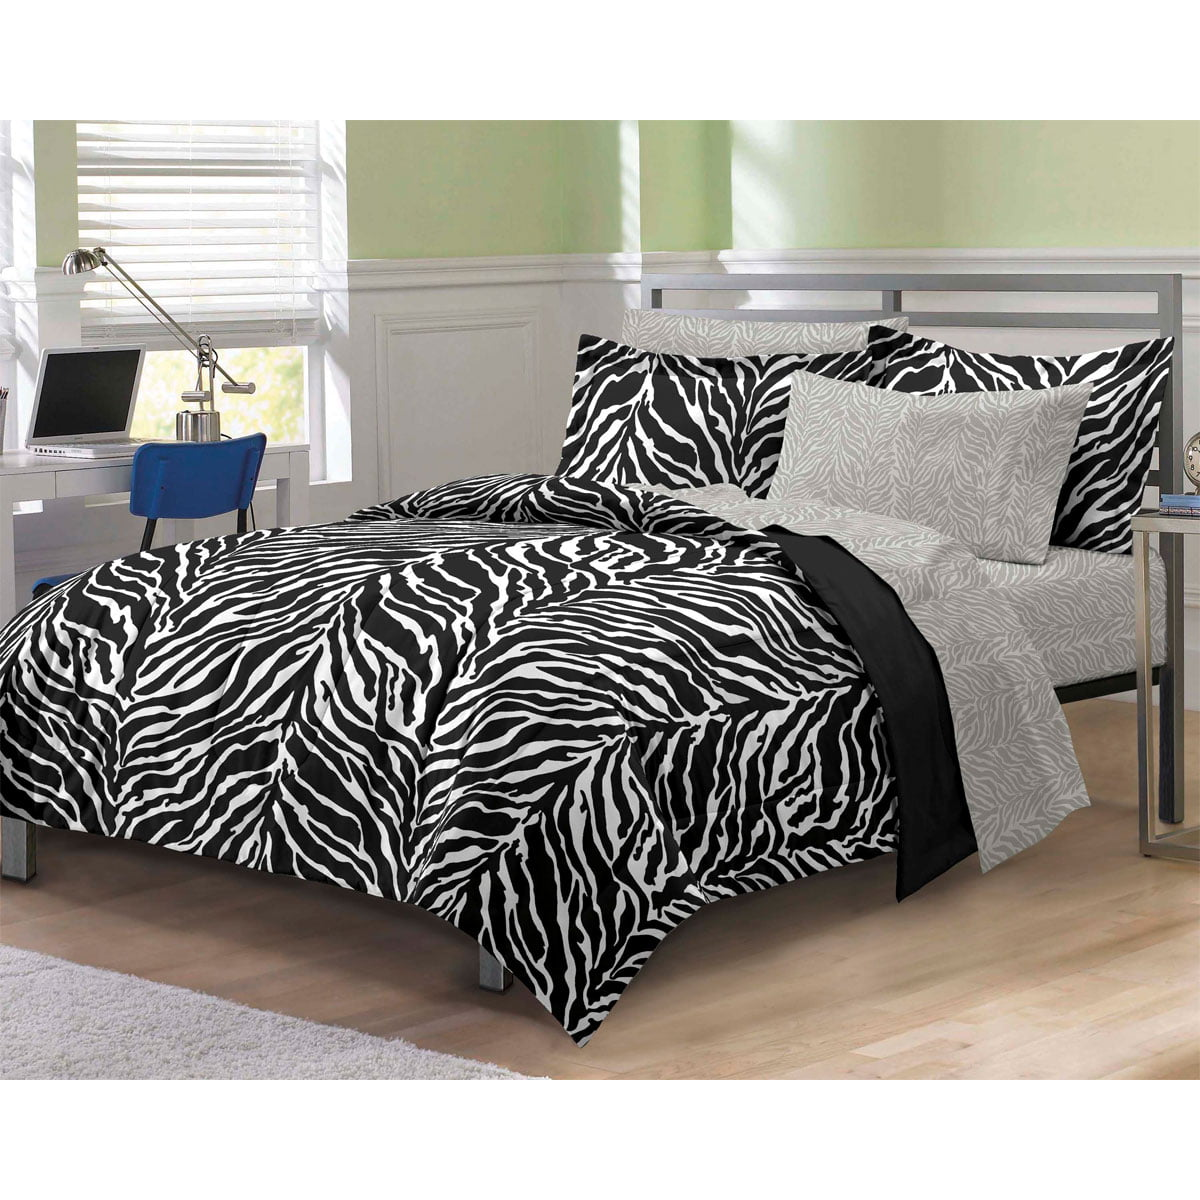 Animal print bedroom sets - My Room Zebra Complete Bed In A Bag Bedding Set Black White Walmart Com